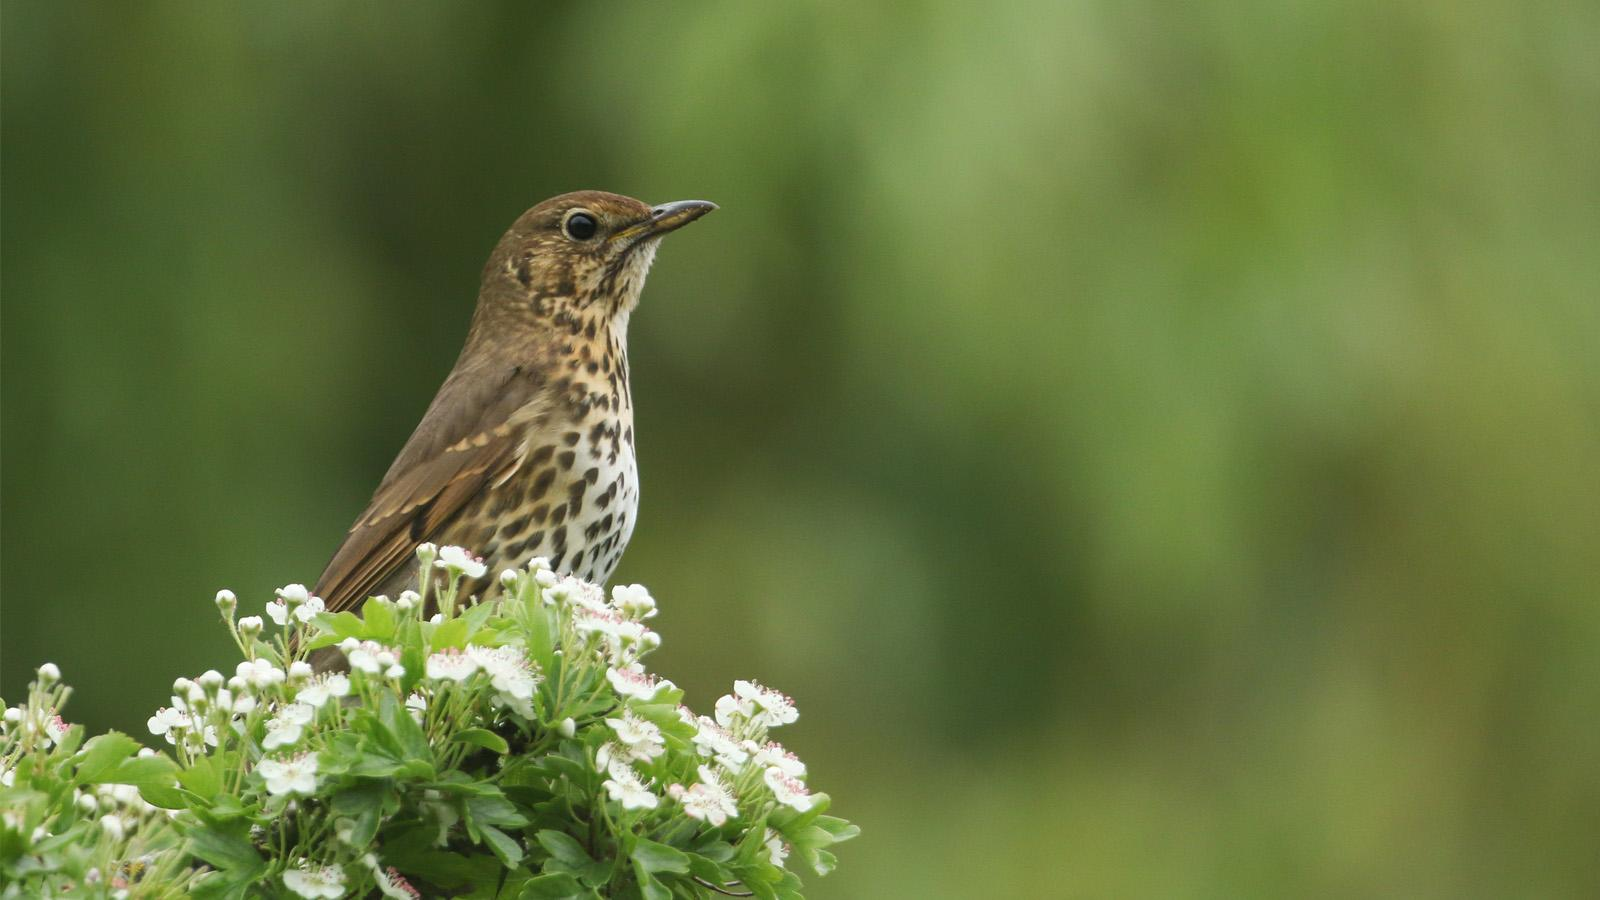 A thrush perch on some greenery